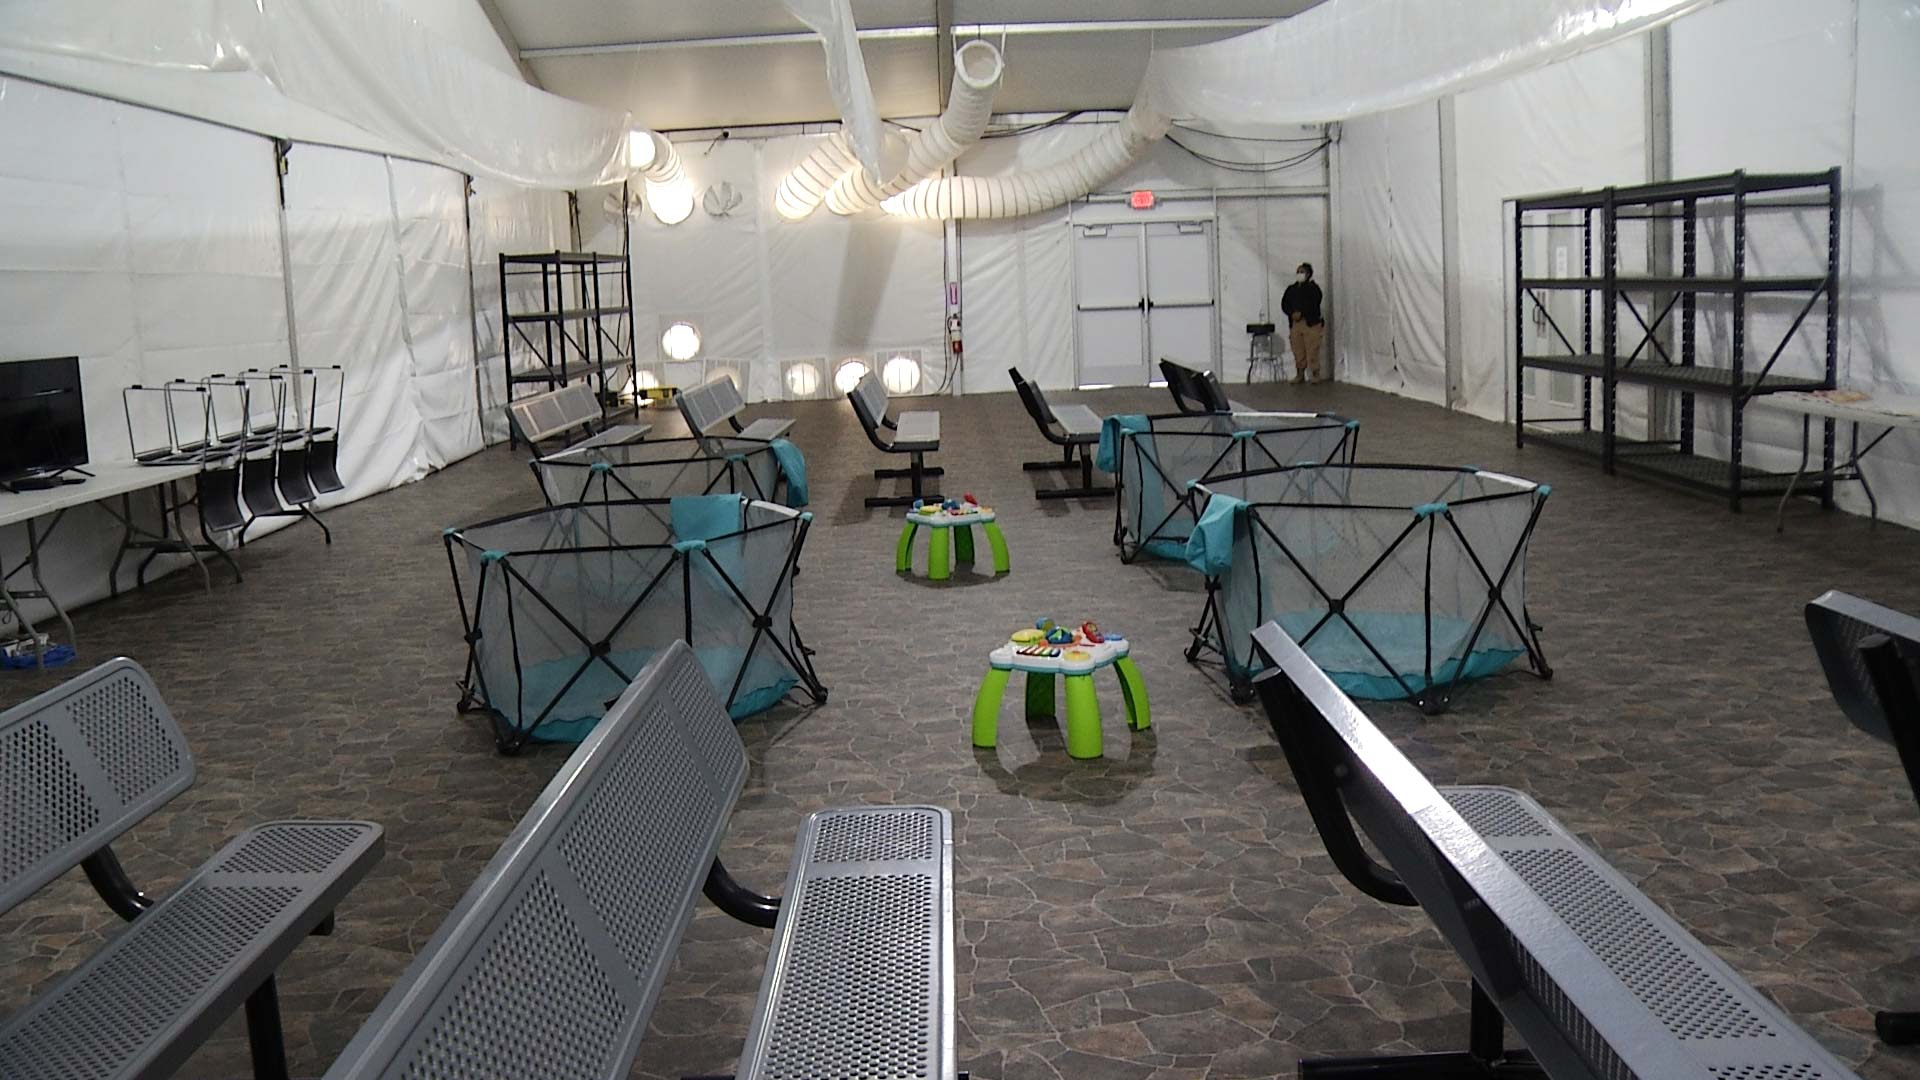 Inside a temporary, tent facility for unaccompanied minors in Customs and Border Patrol's custody in unincorporated Pima Country. April 2021.